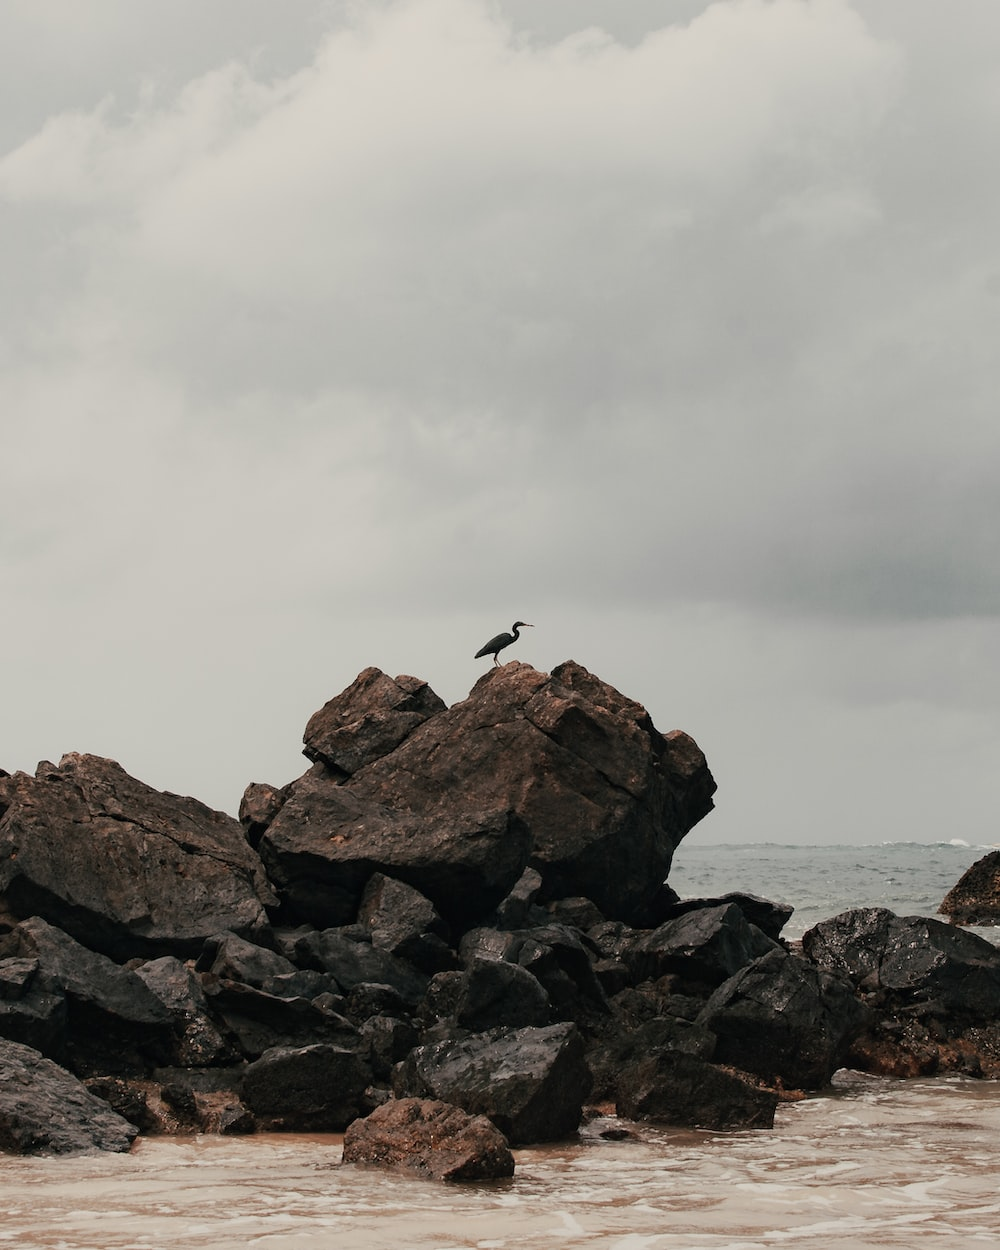 bird flying over the rocky shore during daytime